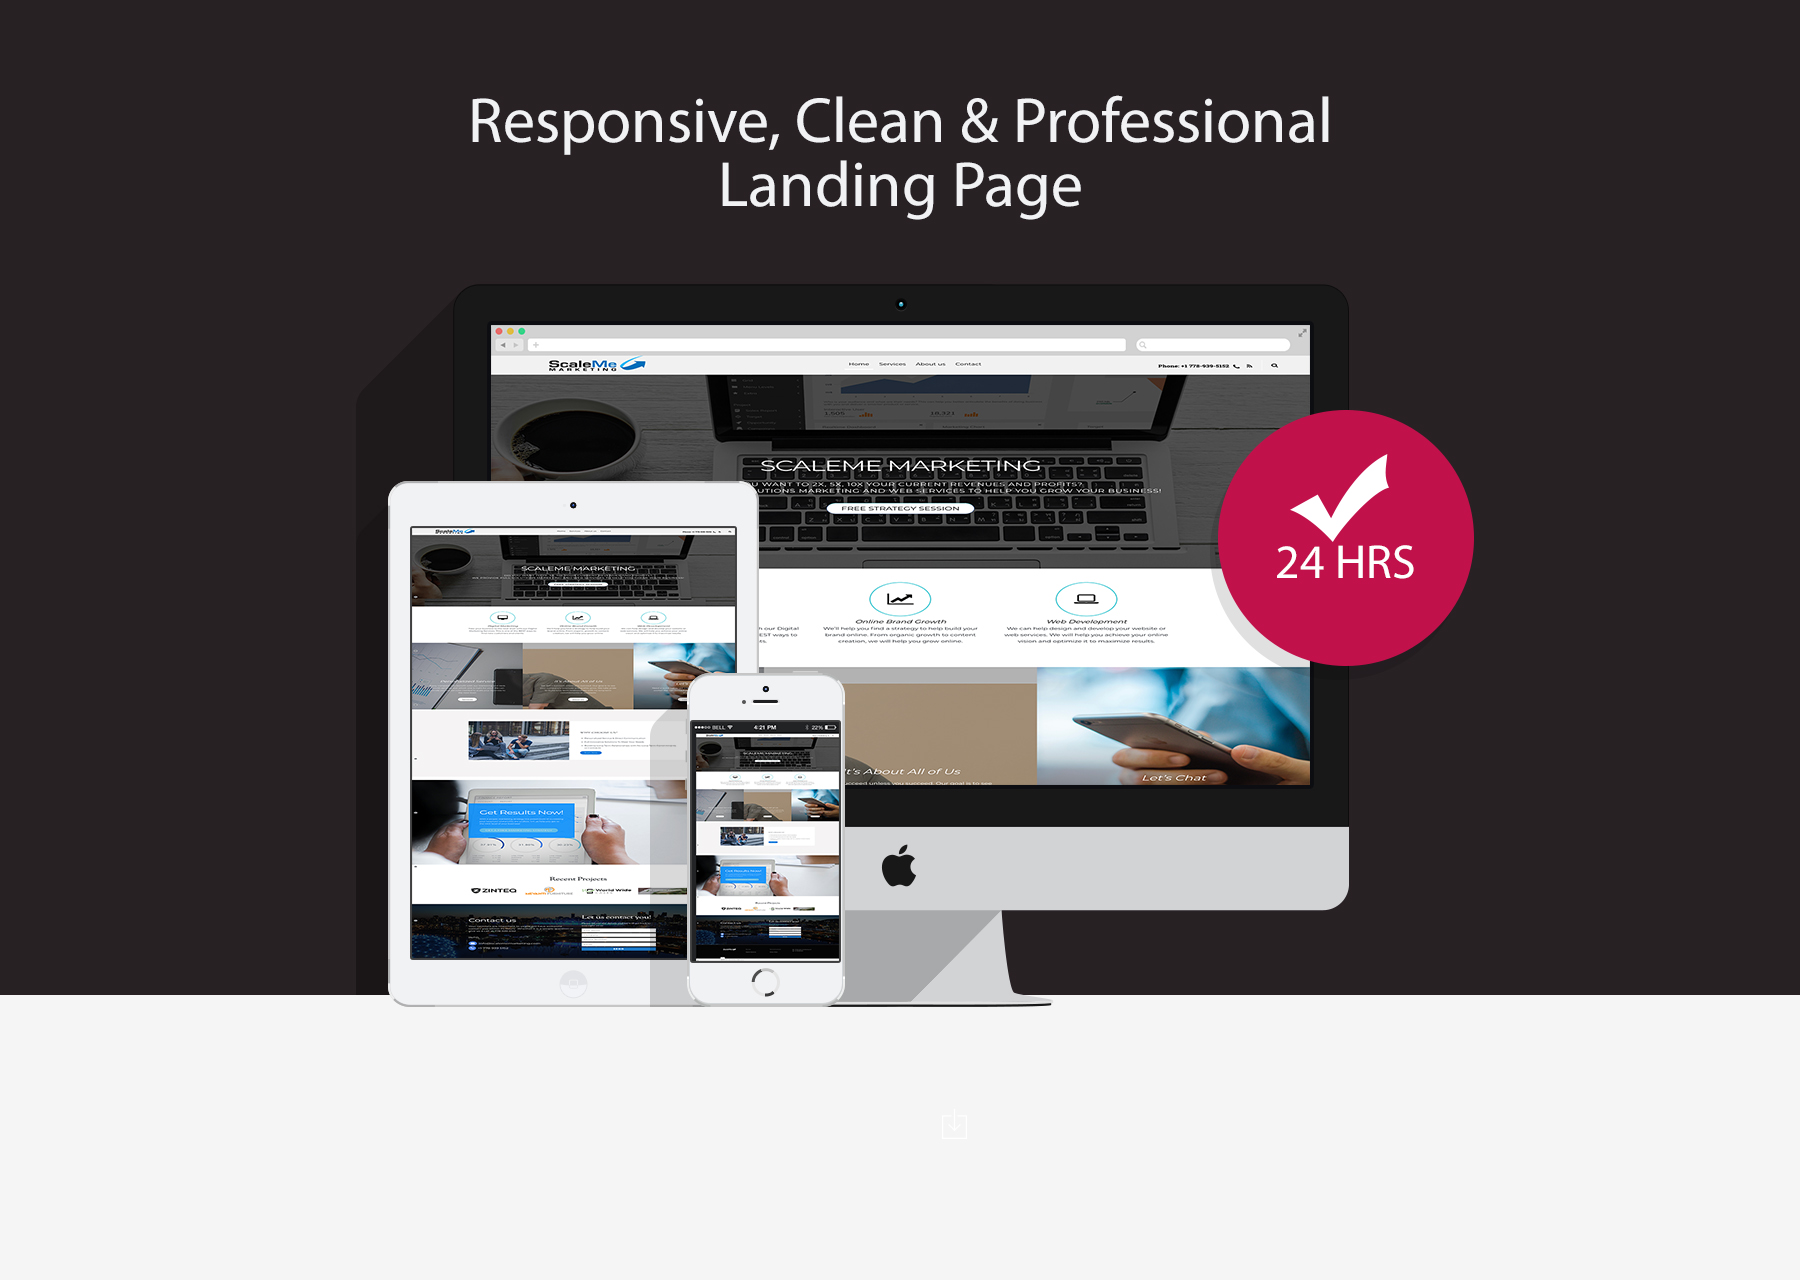 I will create a responsive landing page in wordpress